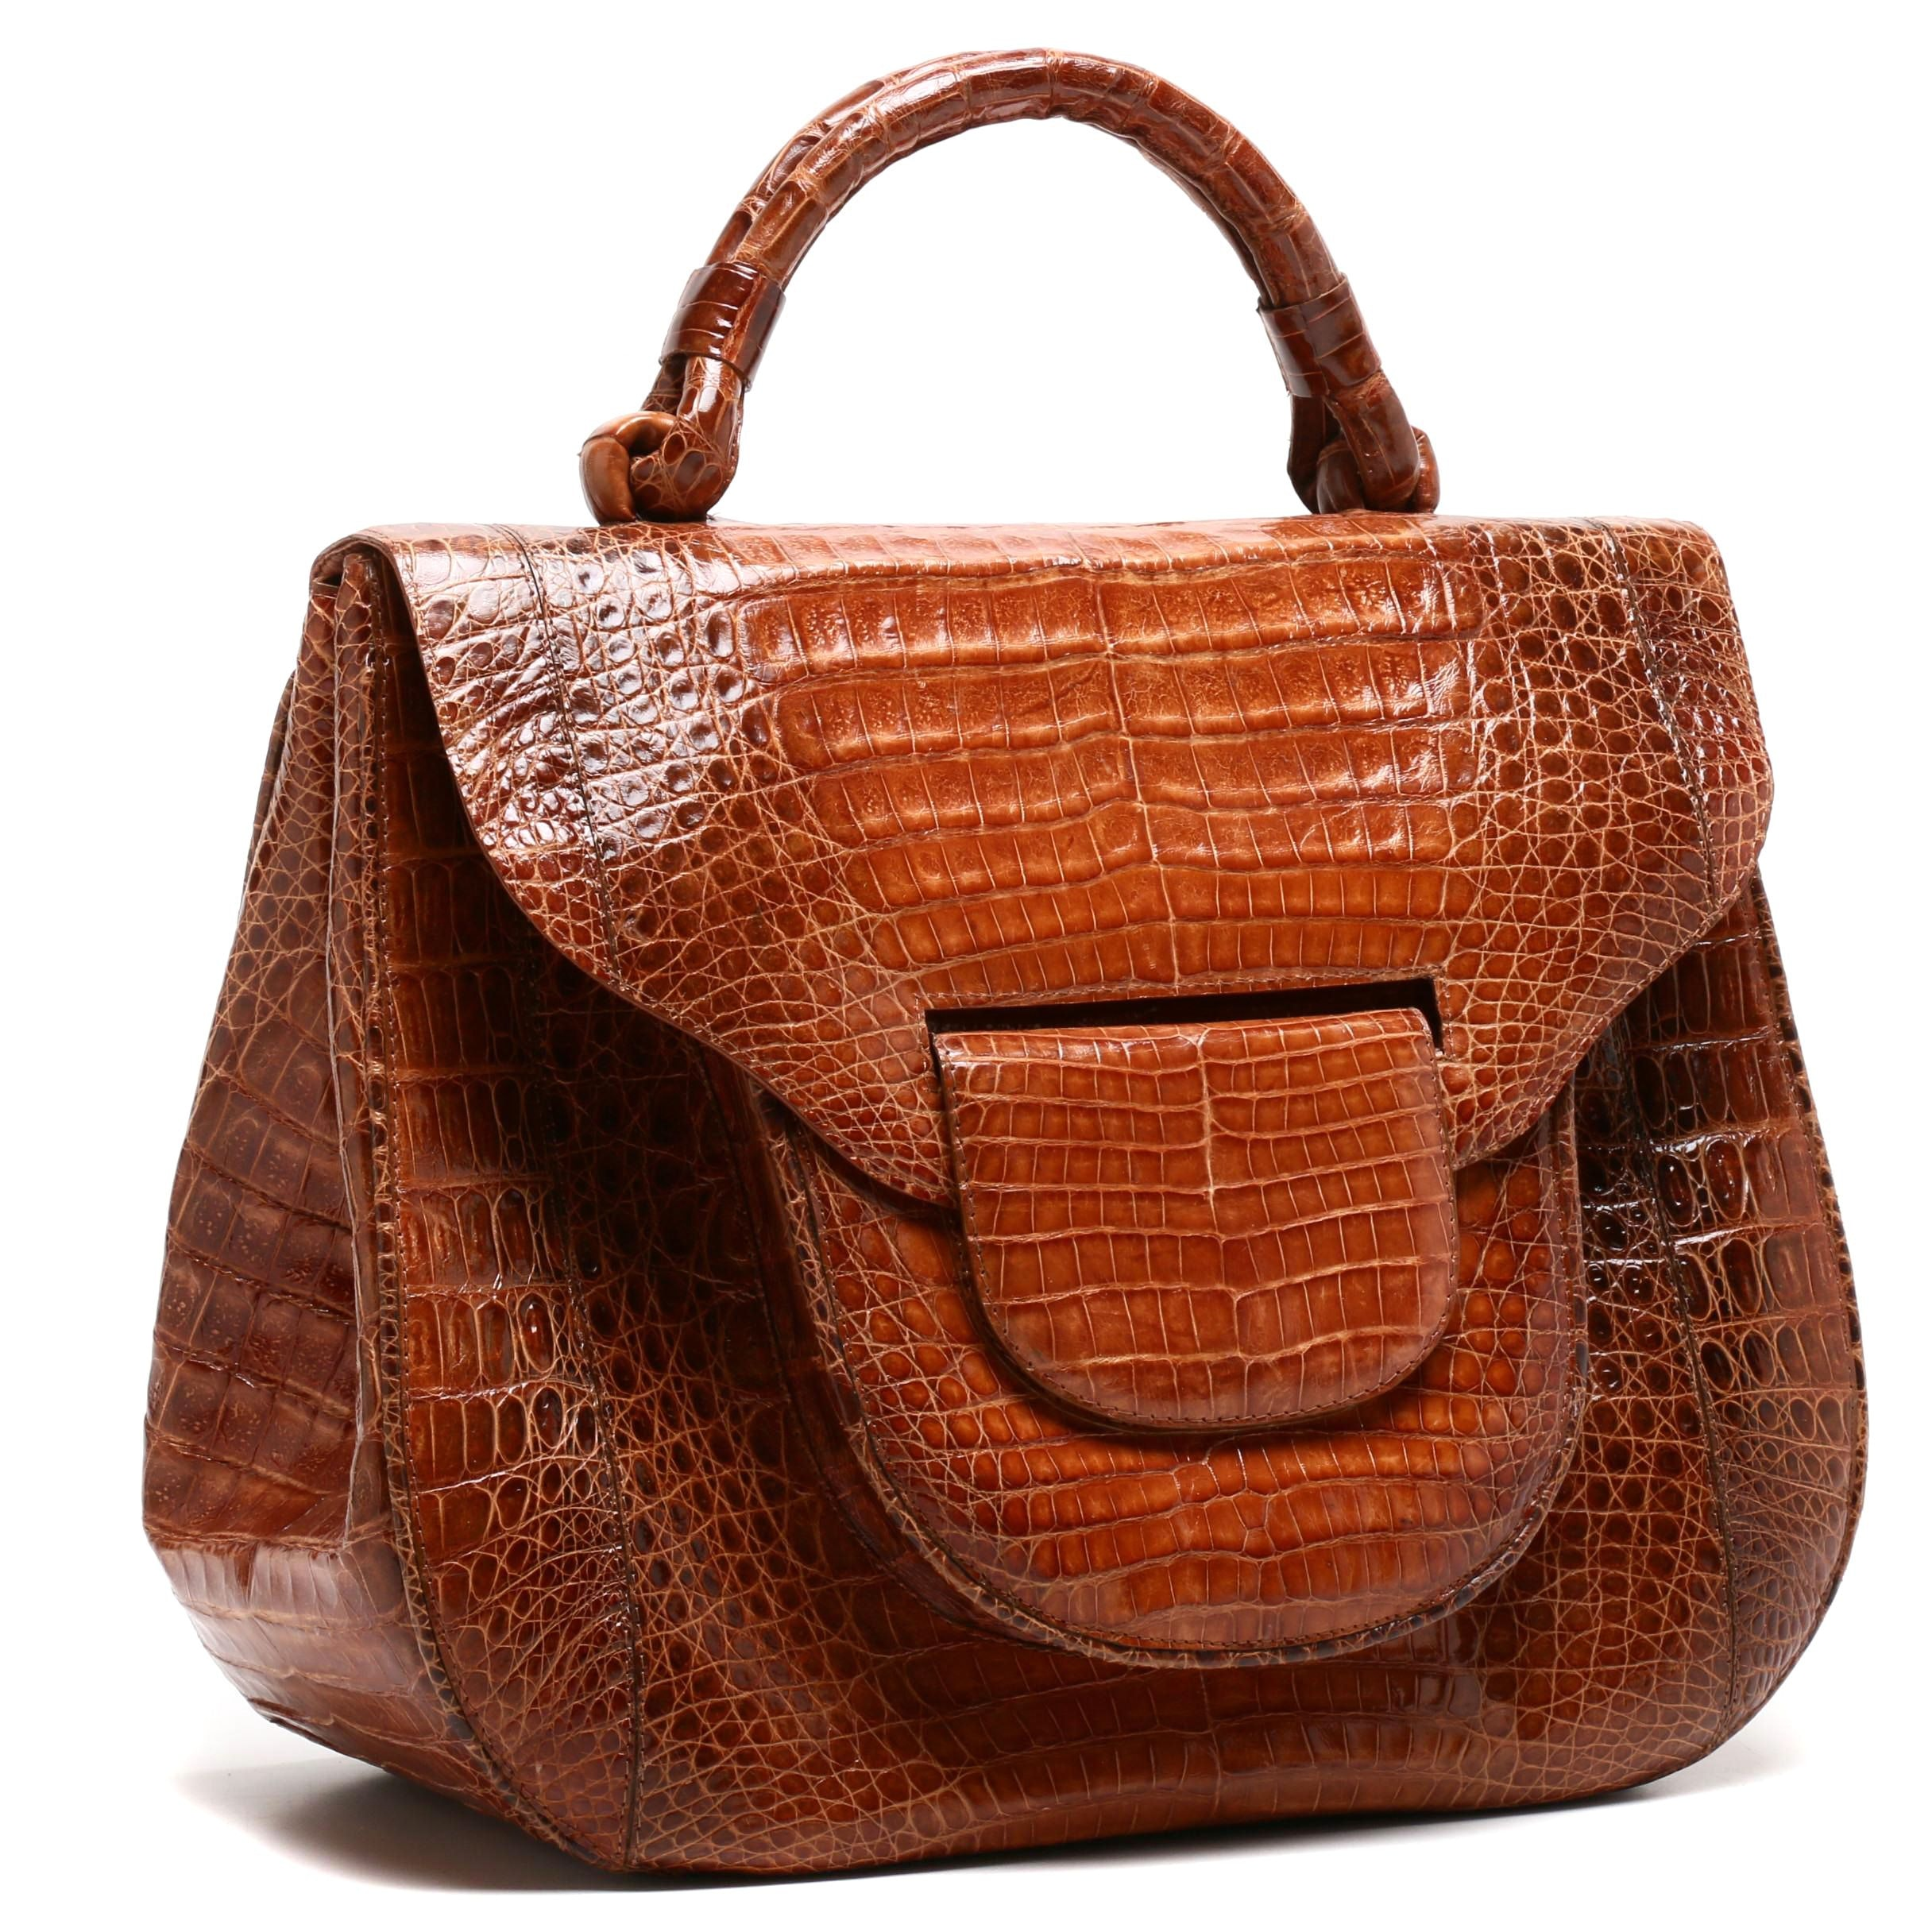 Nancy Gonzalez Light Brown Caiman Crocodile Satchel